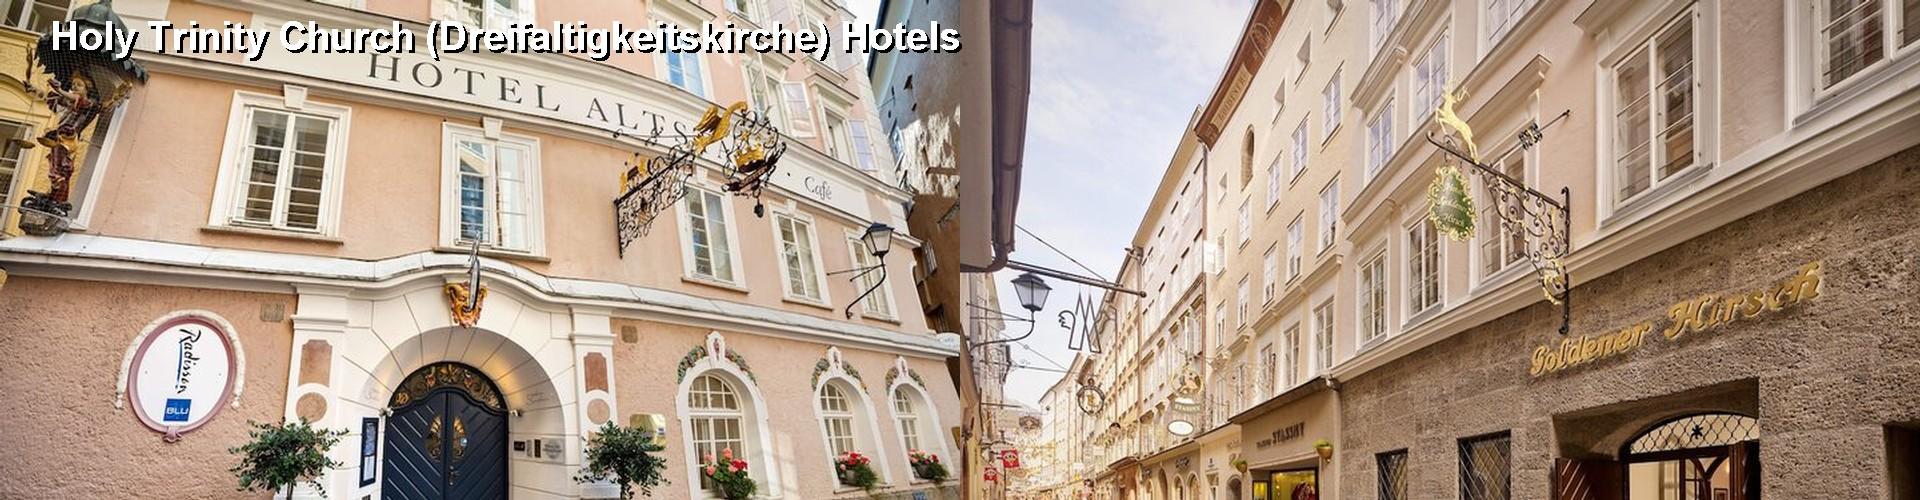 5 Best Hotels near Holy Trinity Church (Dreifaltigkeitskirche)